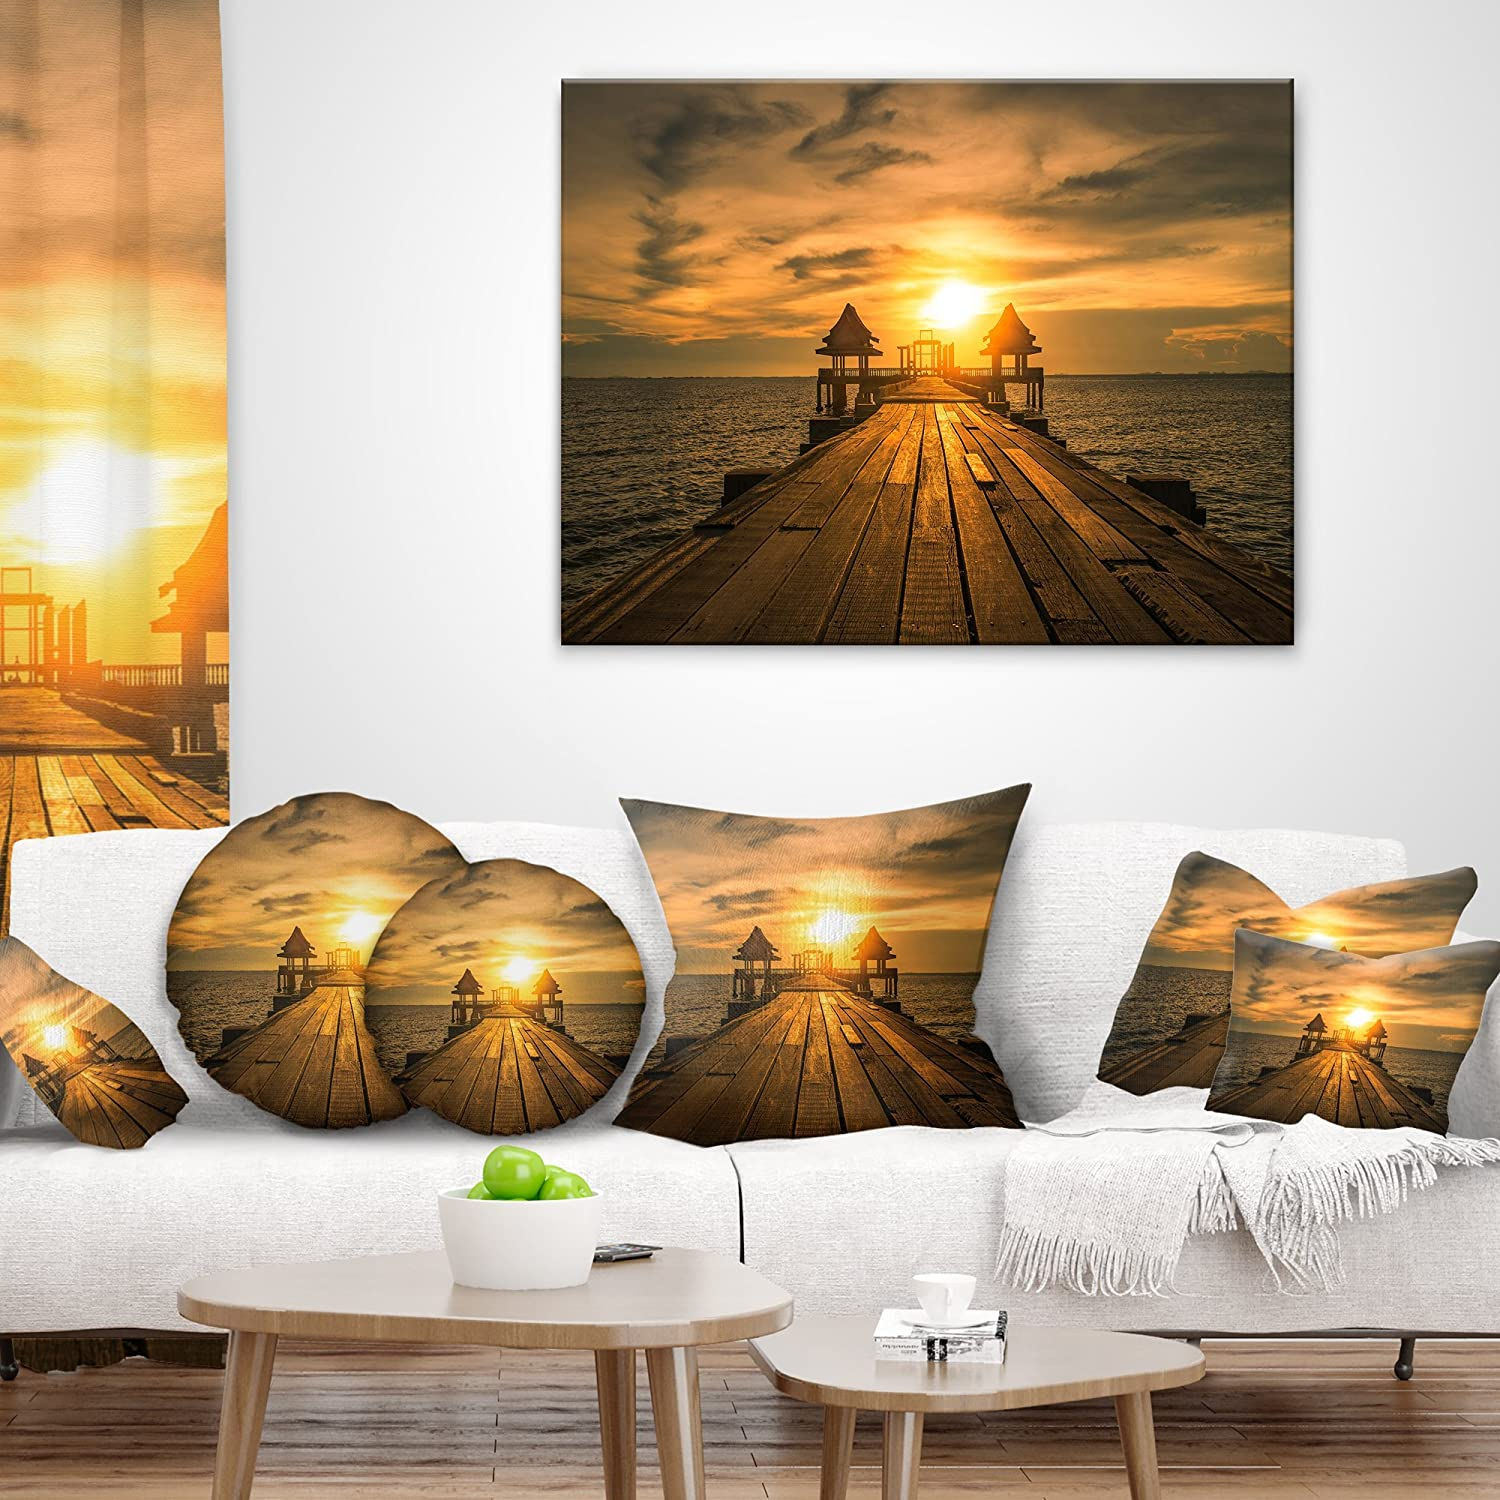 in Sofa Throw Pillow 26 in x 26 in Designart CU10630-26-26 Huge Wooden Bridge to Illuminated Sky Pier Seascape Cushion Cover for Living Room